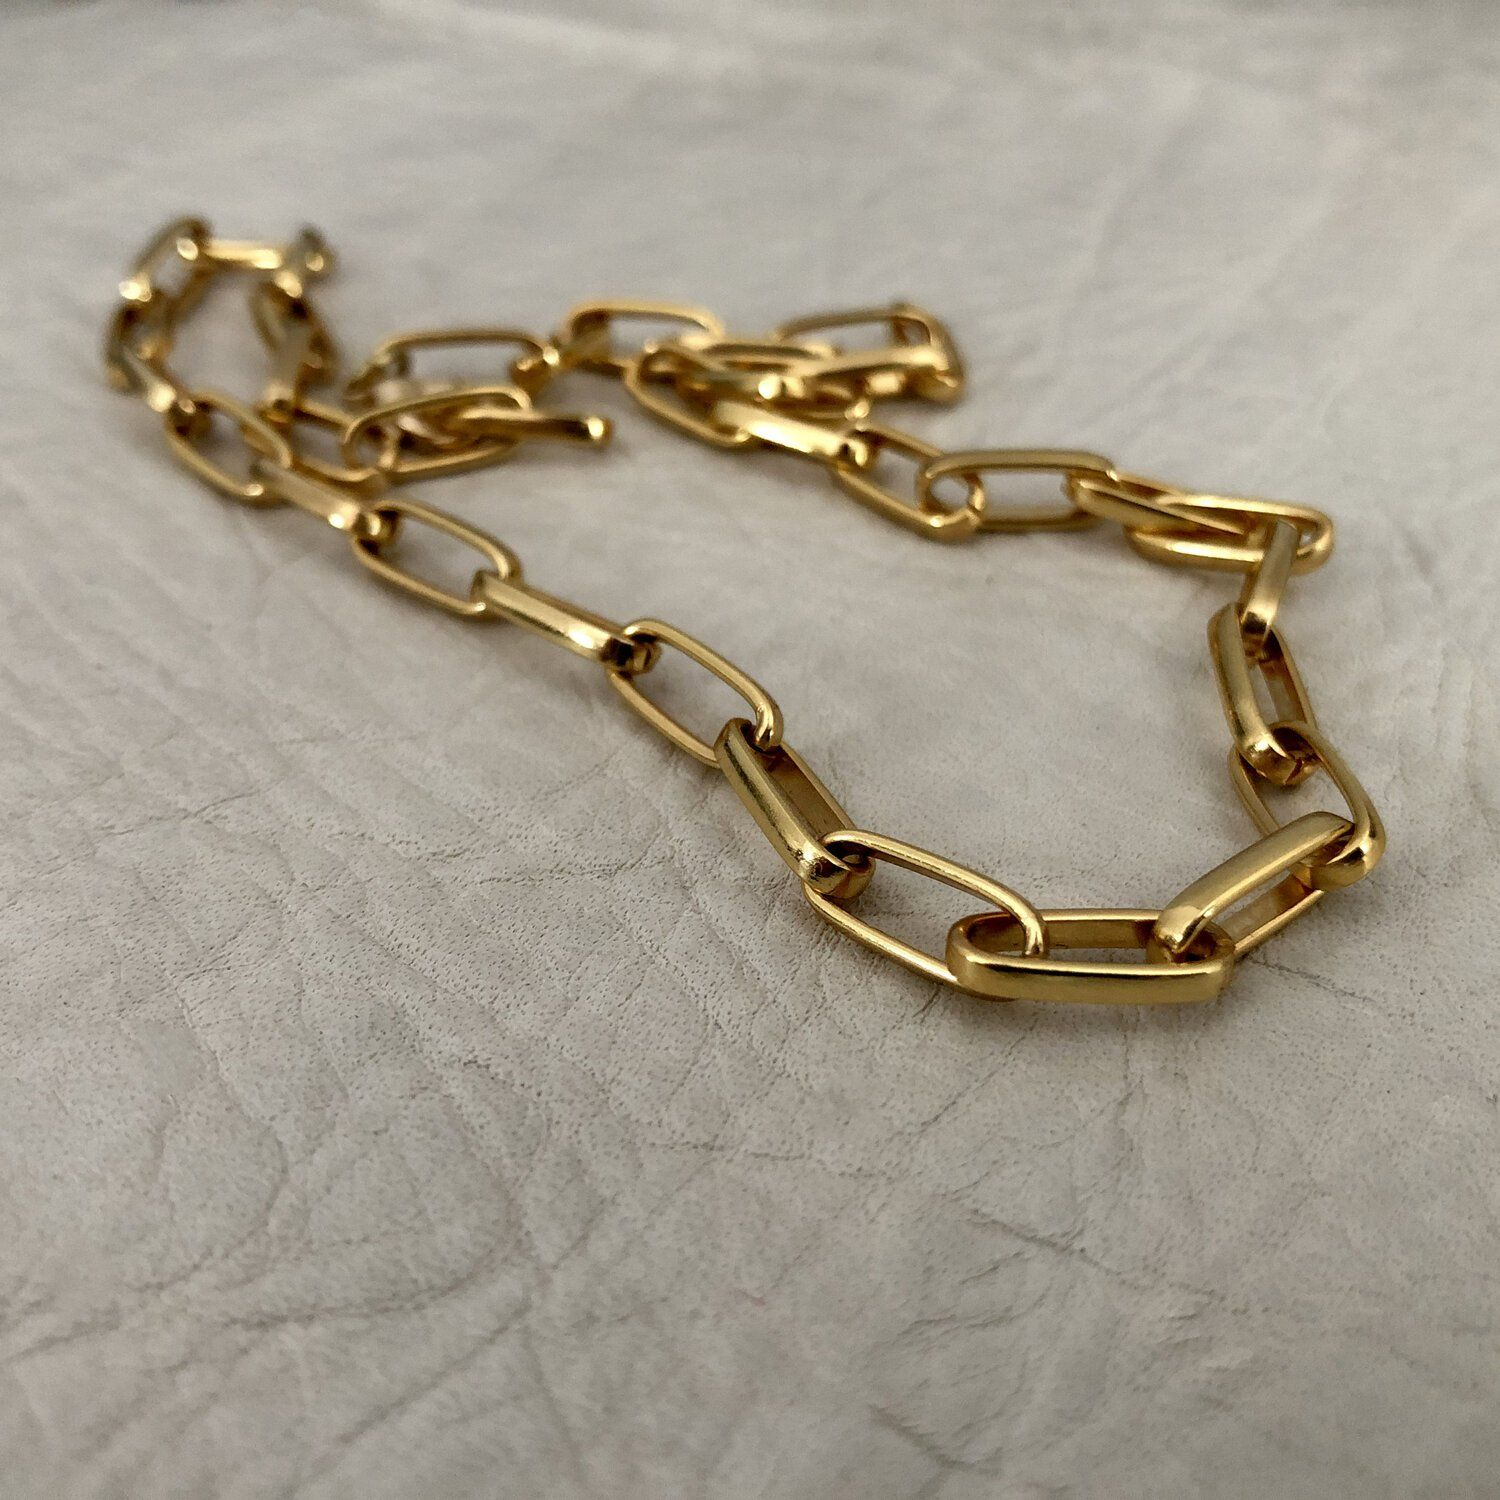 Heliotrope Chain Necklace - Gold Plate